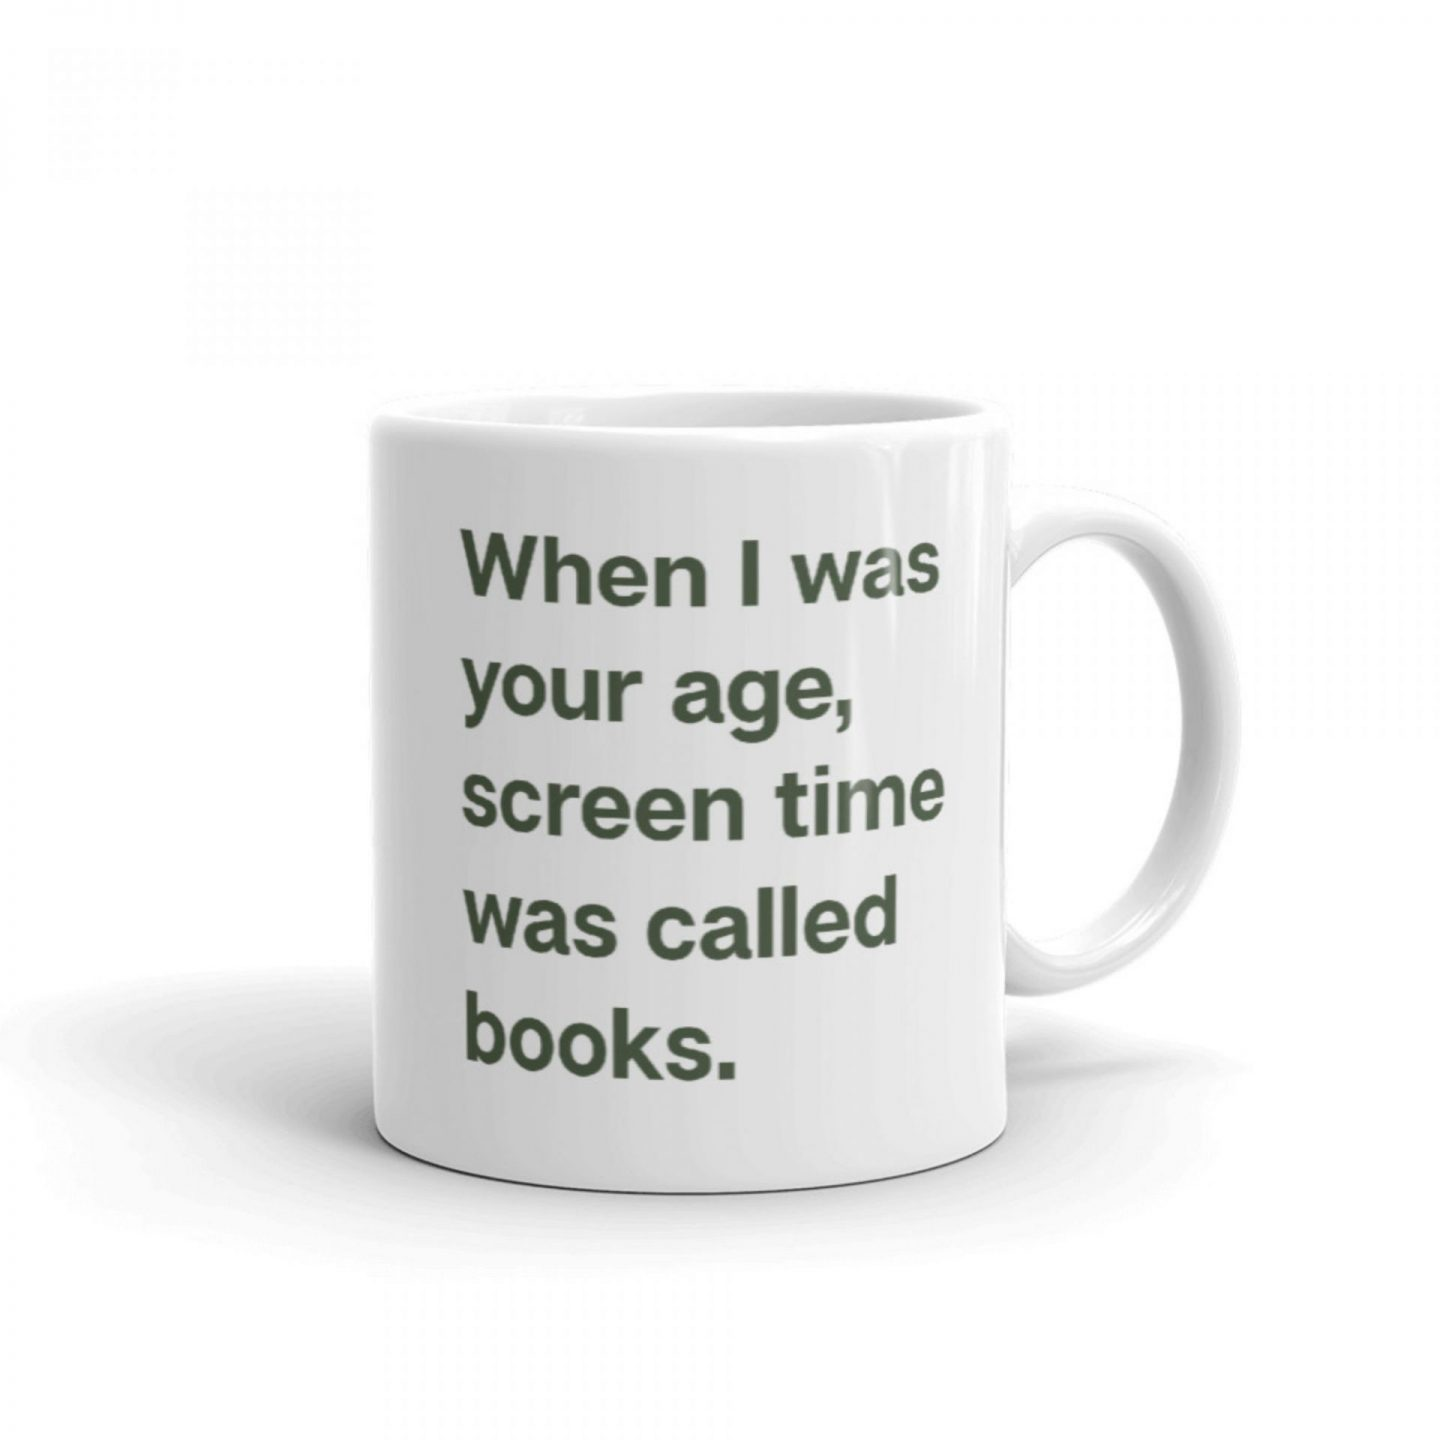 cobberson when i was your age screen time was called books mug